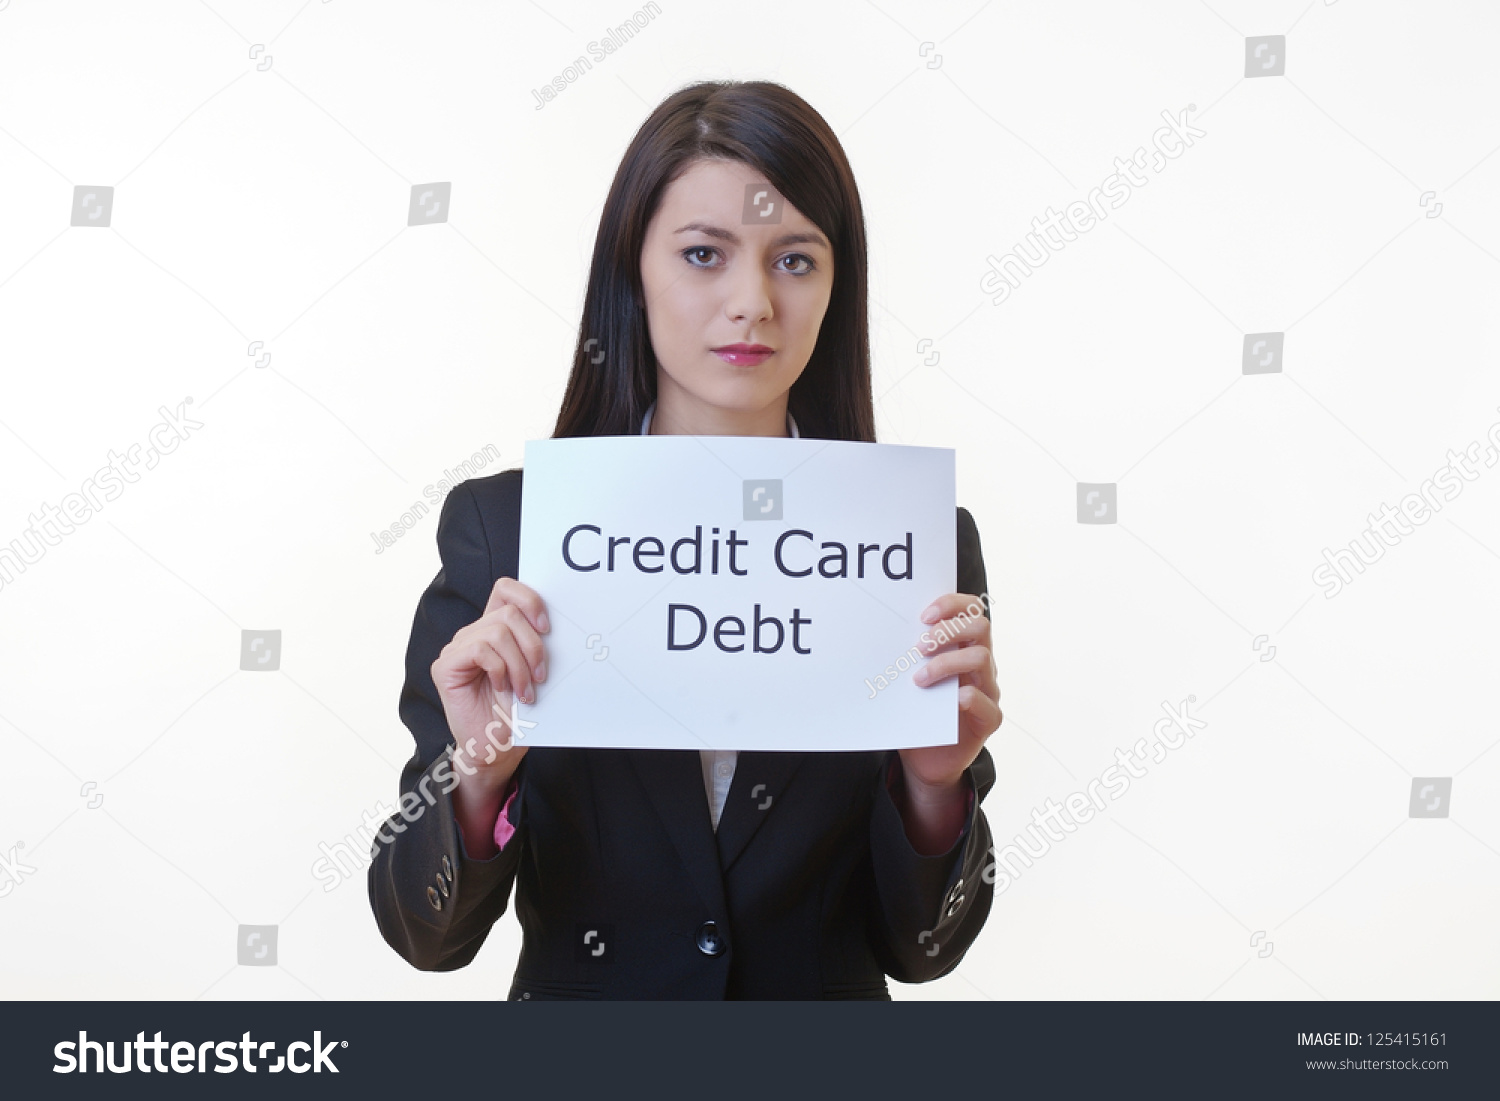 essay on credit card debt The credit card debt is one of the most popular assignments among students' documents if you are stuck with writing or missing ideas, scroll down and find inspiration in the best samples.